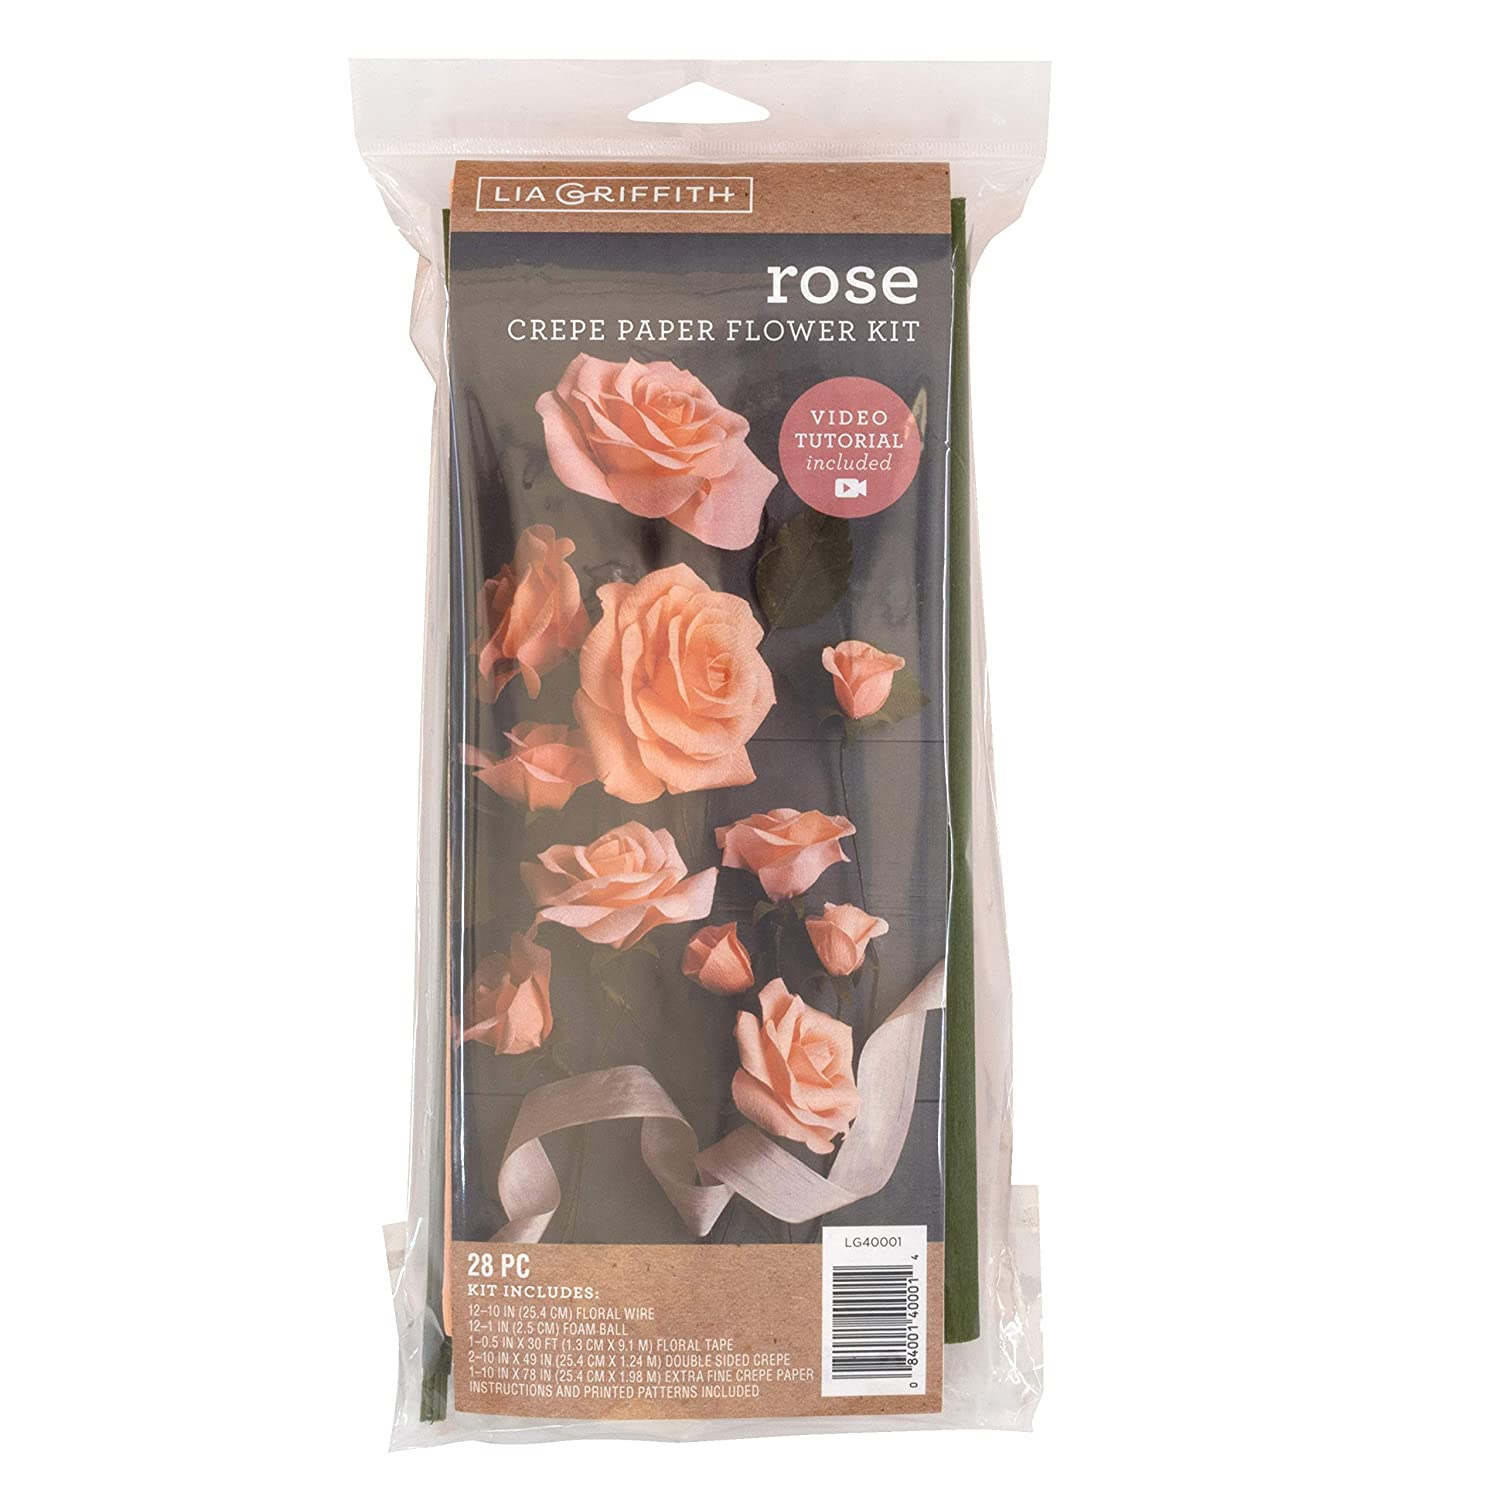 Lia Griffith Lg40001 Crepe Paper Flower Kit Roses Assorted Sizes Assorted Colors 28 Pieces